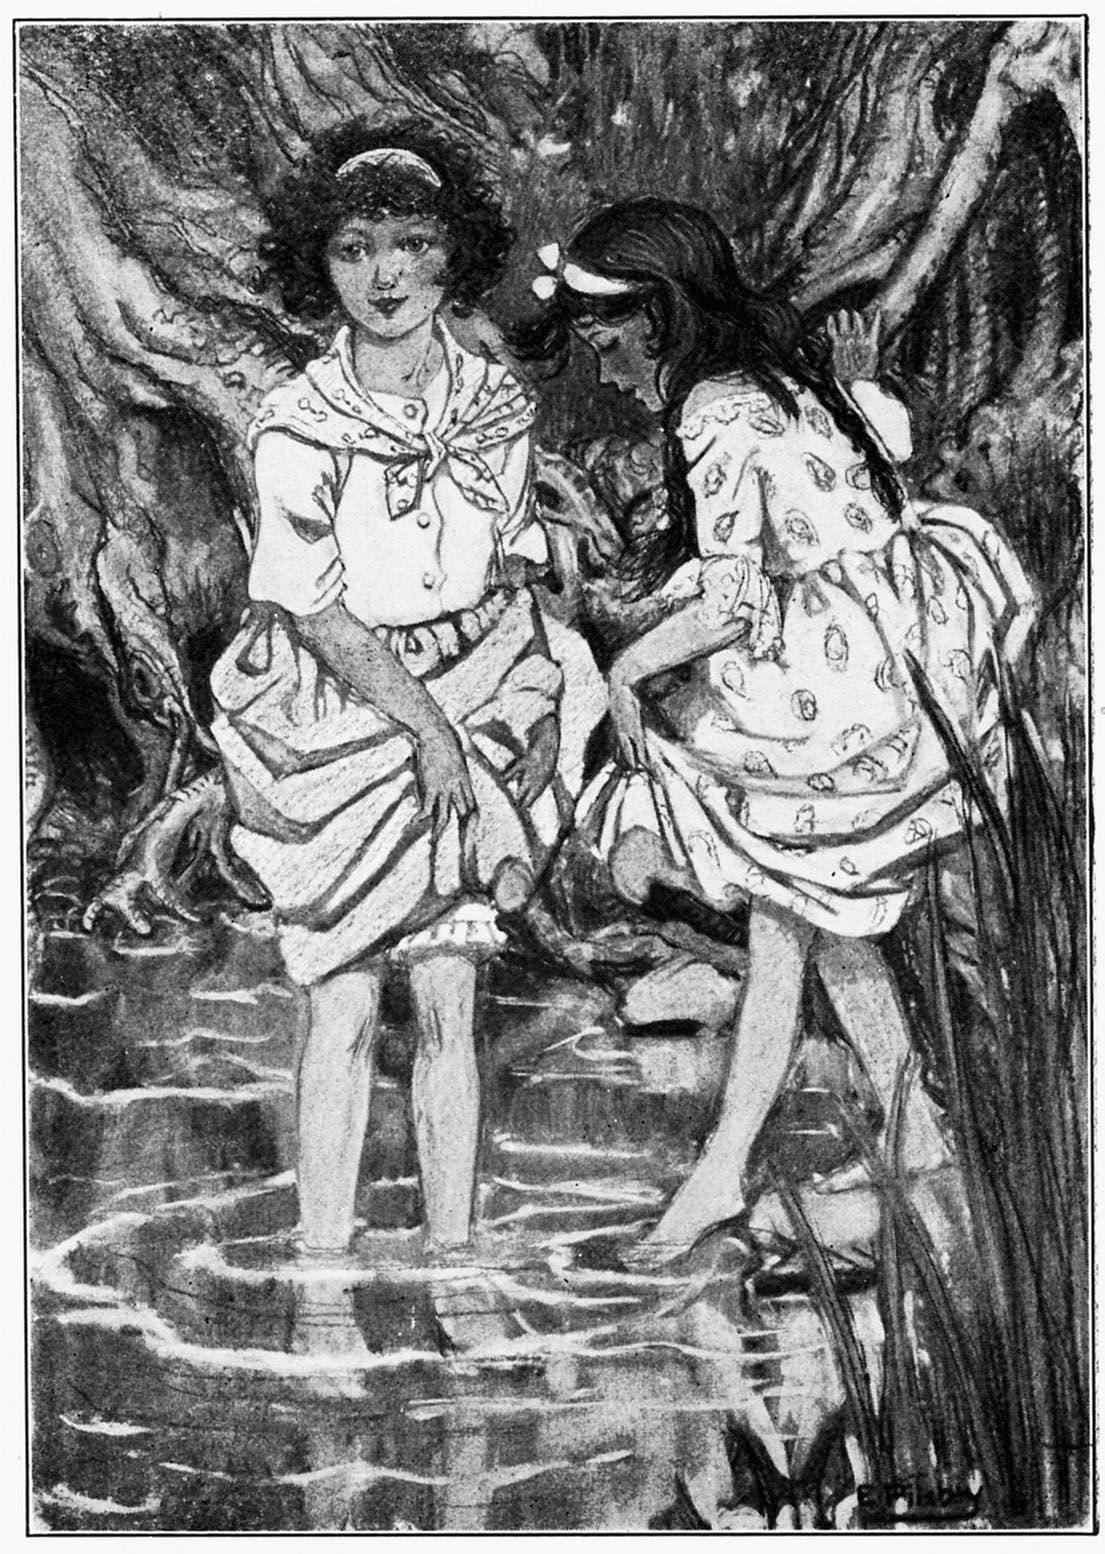 The project gutenberg ebook of a little maid of old maine by alice melvina followed annas suggestion and her starched skirts and hat were left well up the beach with annas stout shoes and stockings and the two girls fandeluxe Images